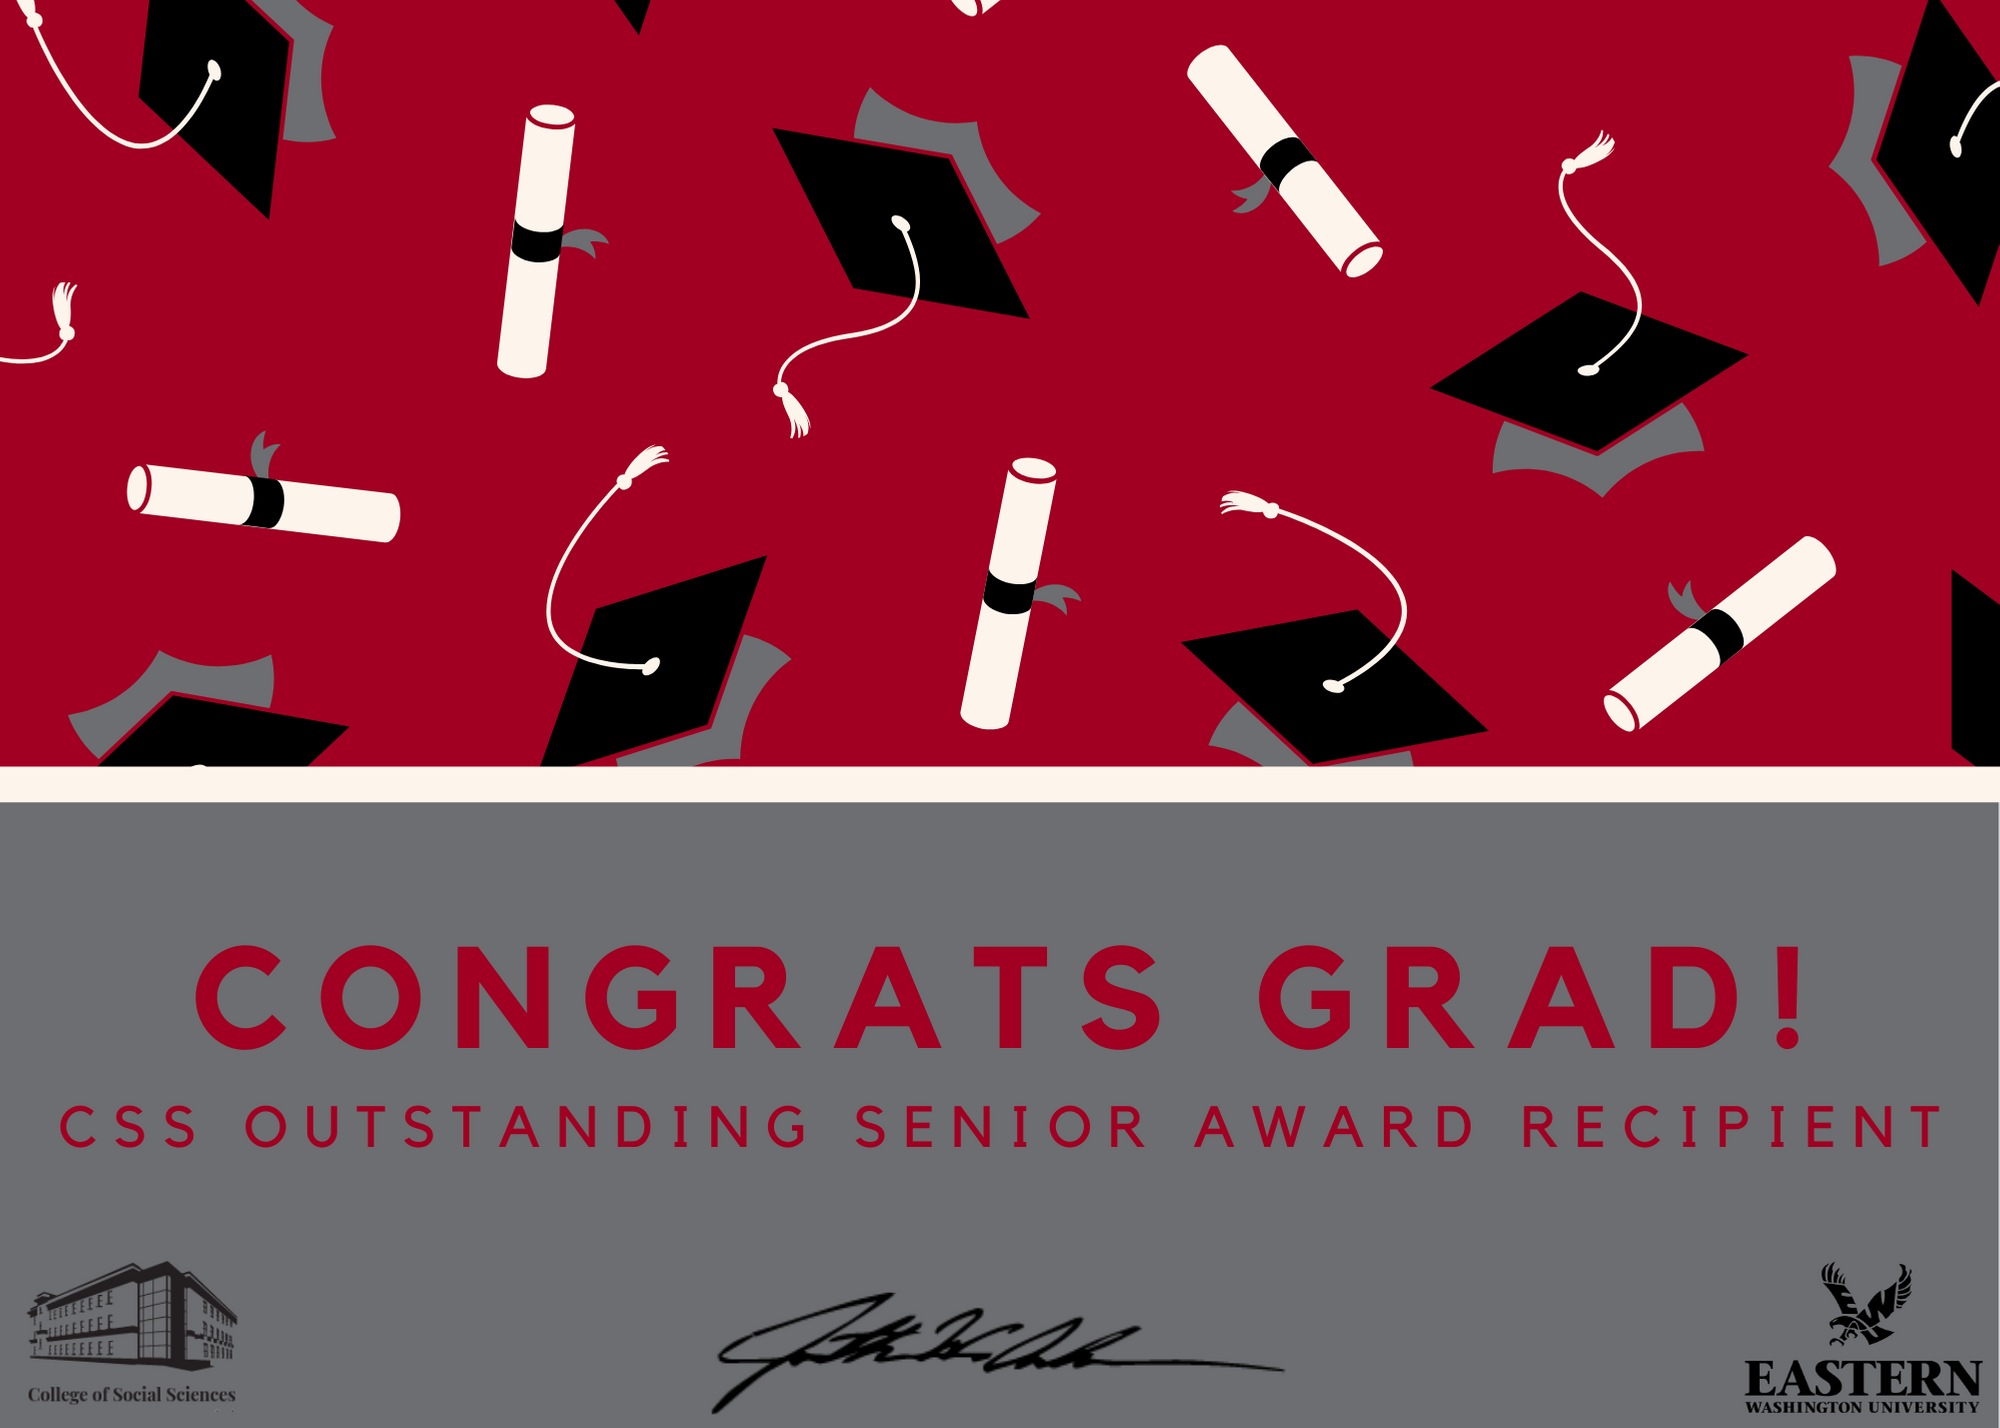 2610-caps-and-diplomas-pattern-graduation-card-2.png